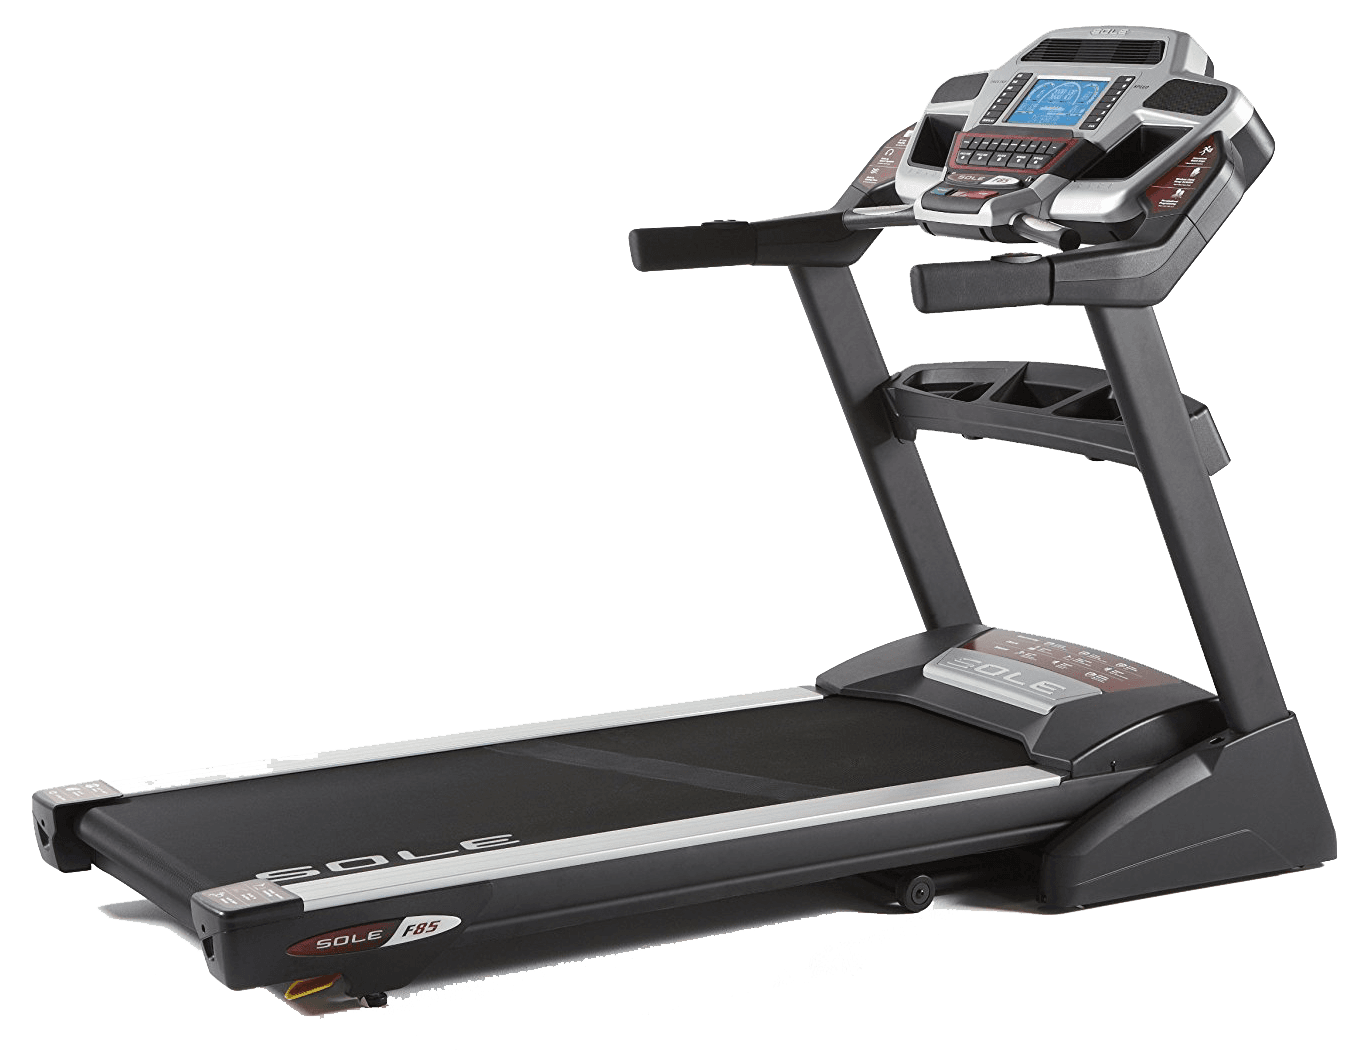 Exercising clipart running machine. Treadmill png transparent images